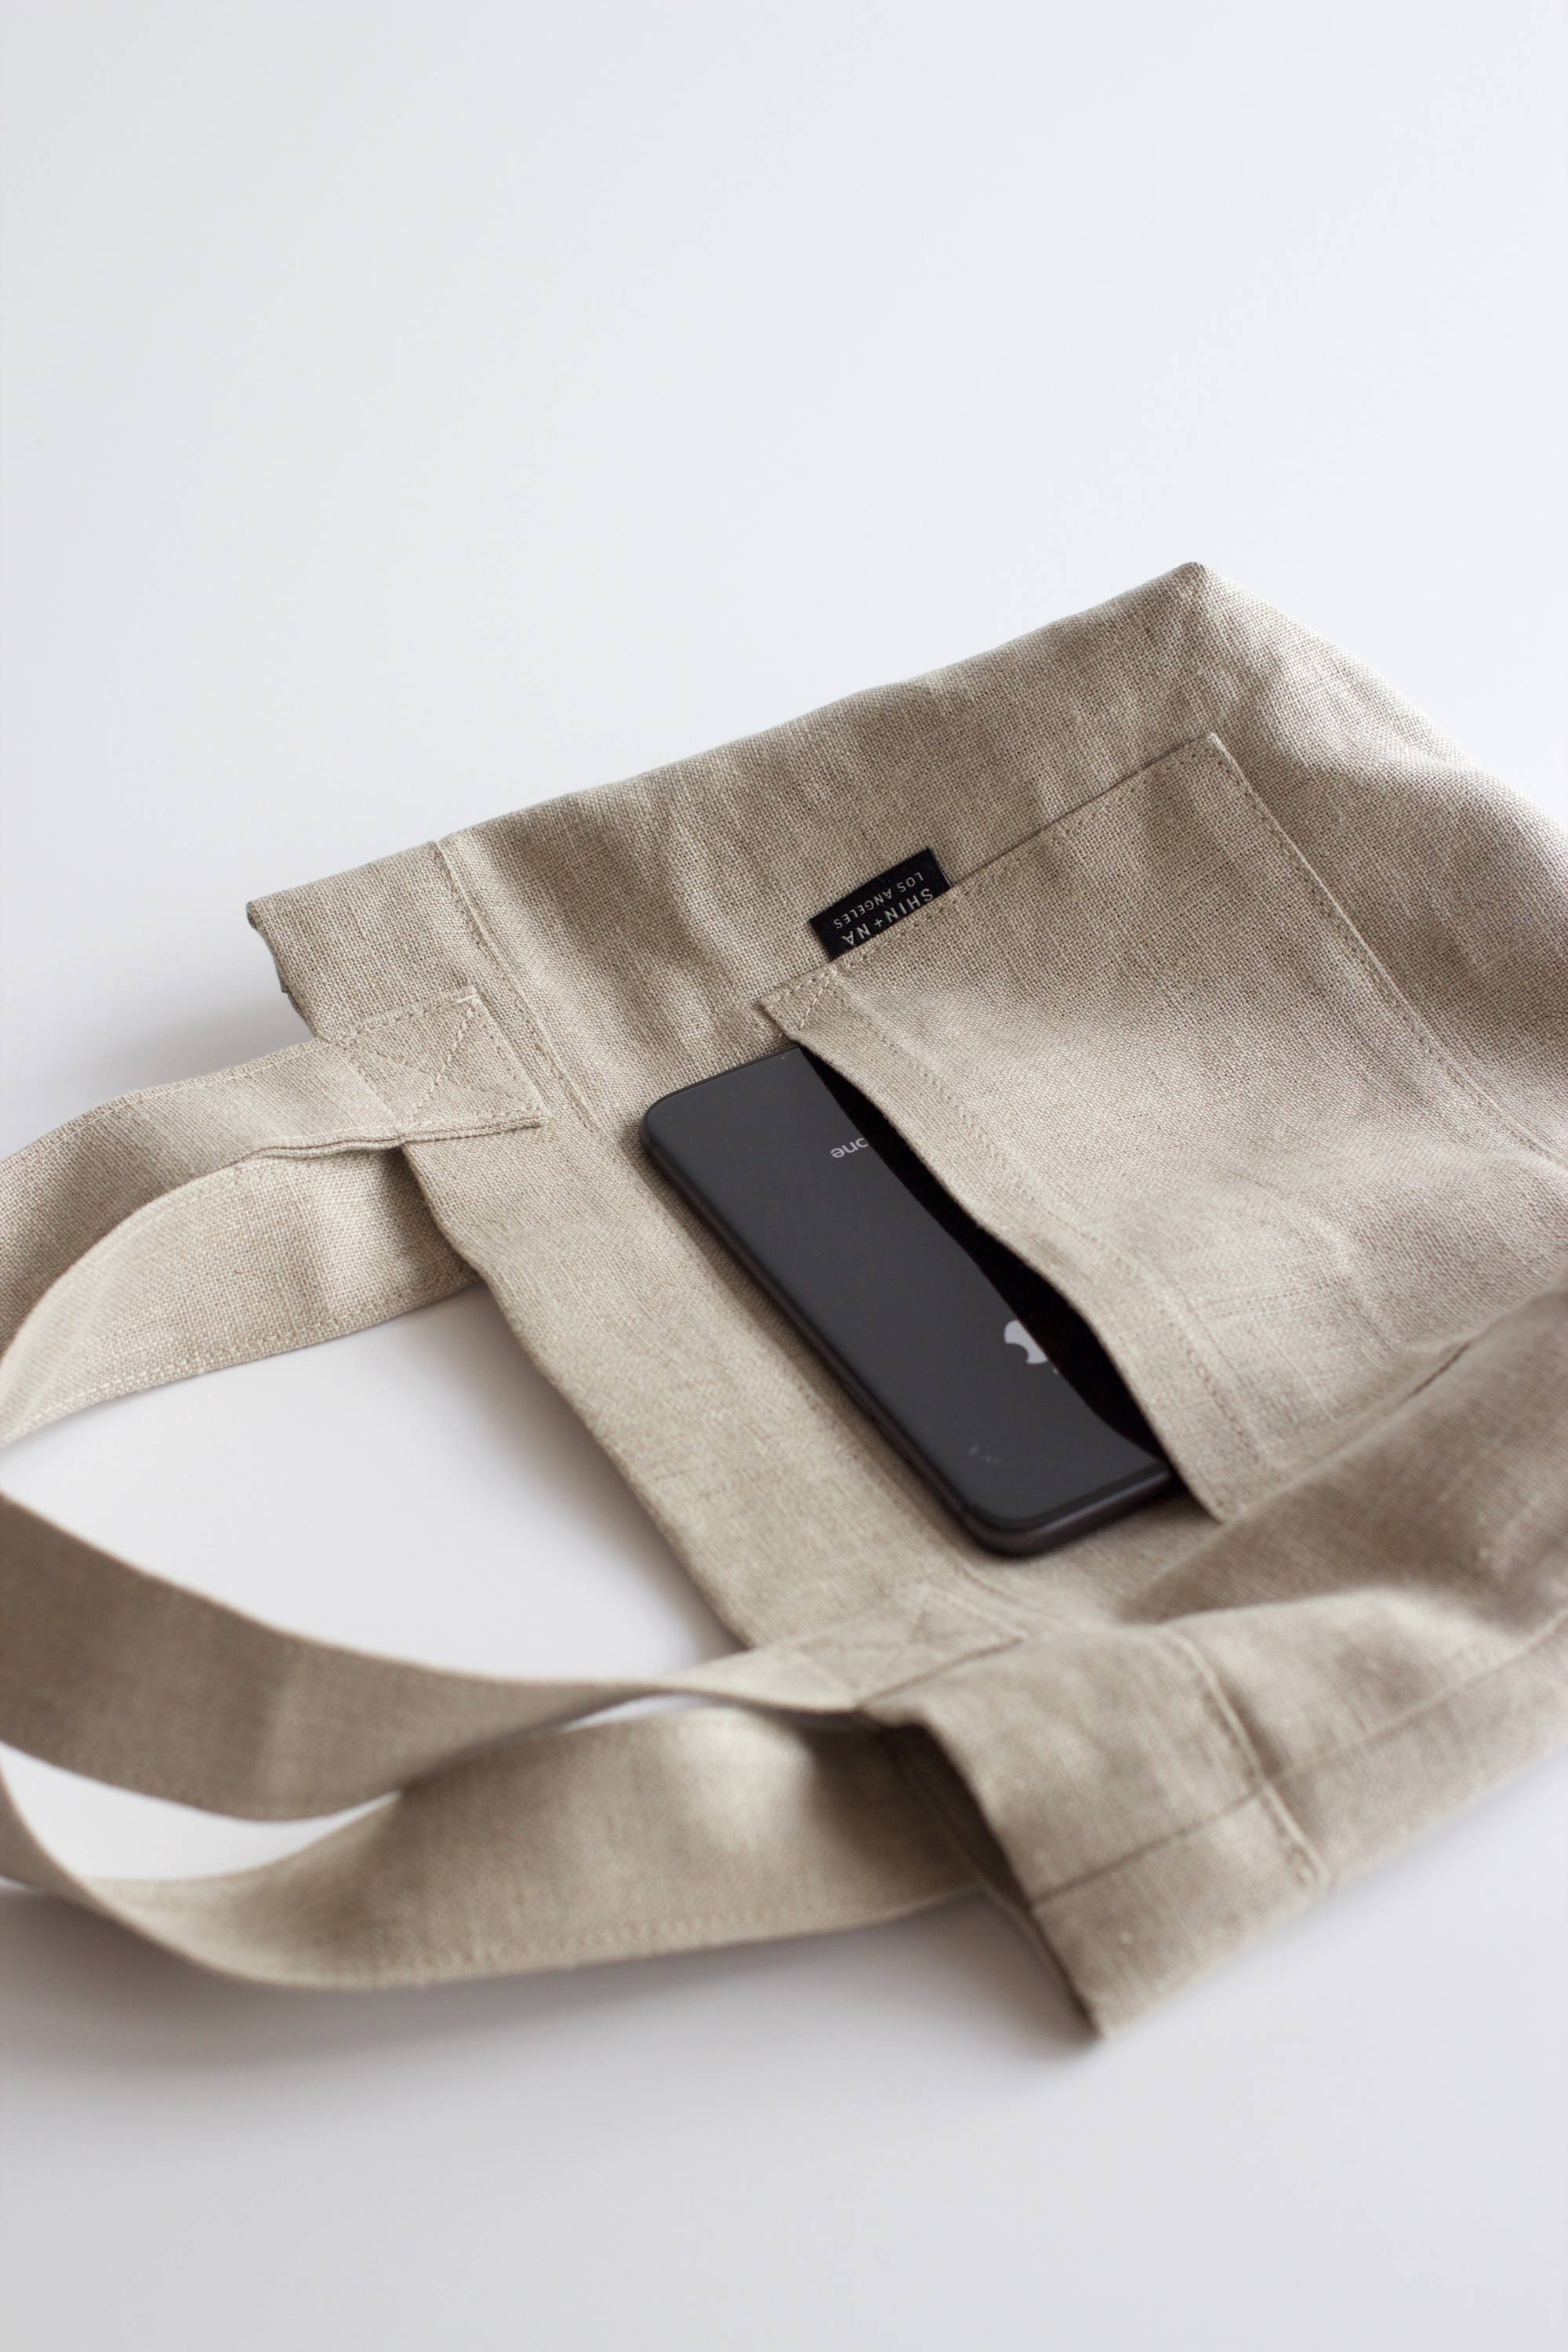 Four by seven inch pockets fits a cell phone